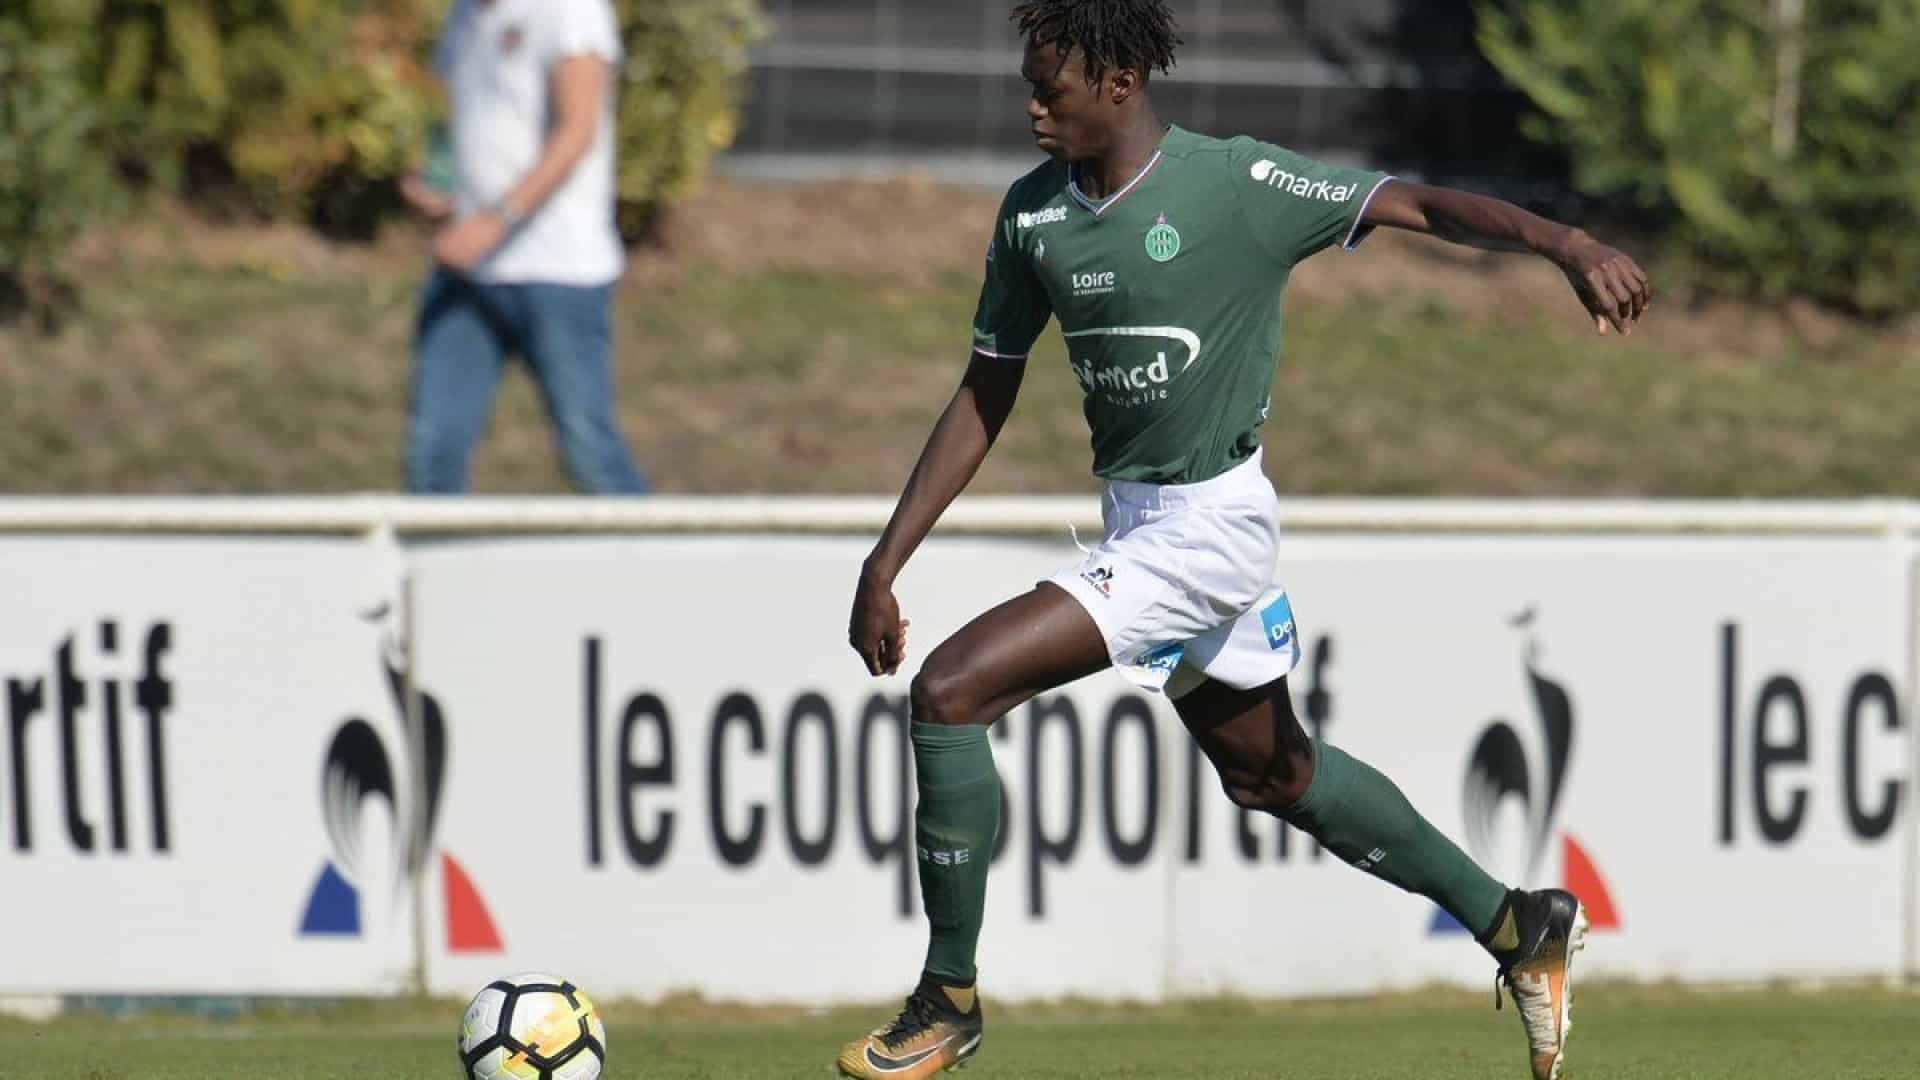 William Gomis, futebolista francês de 19 anos, baleado mortalmente